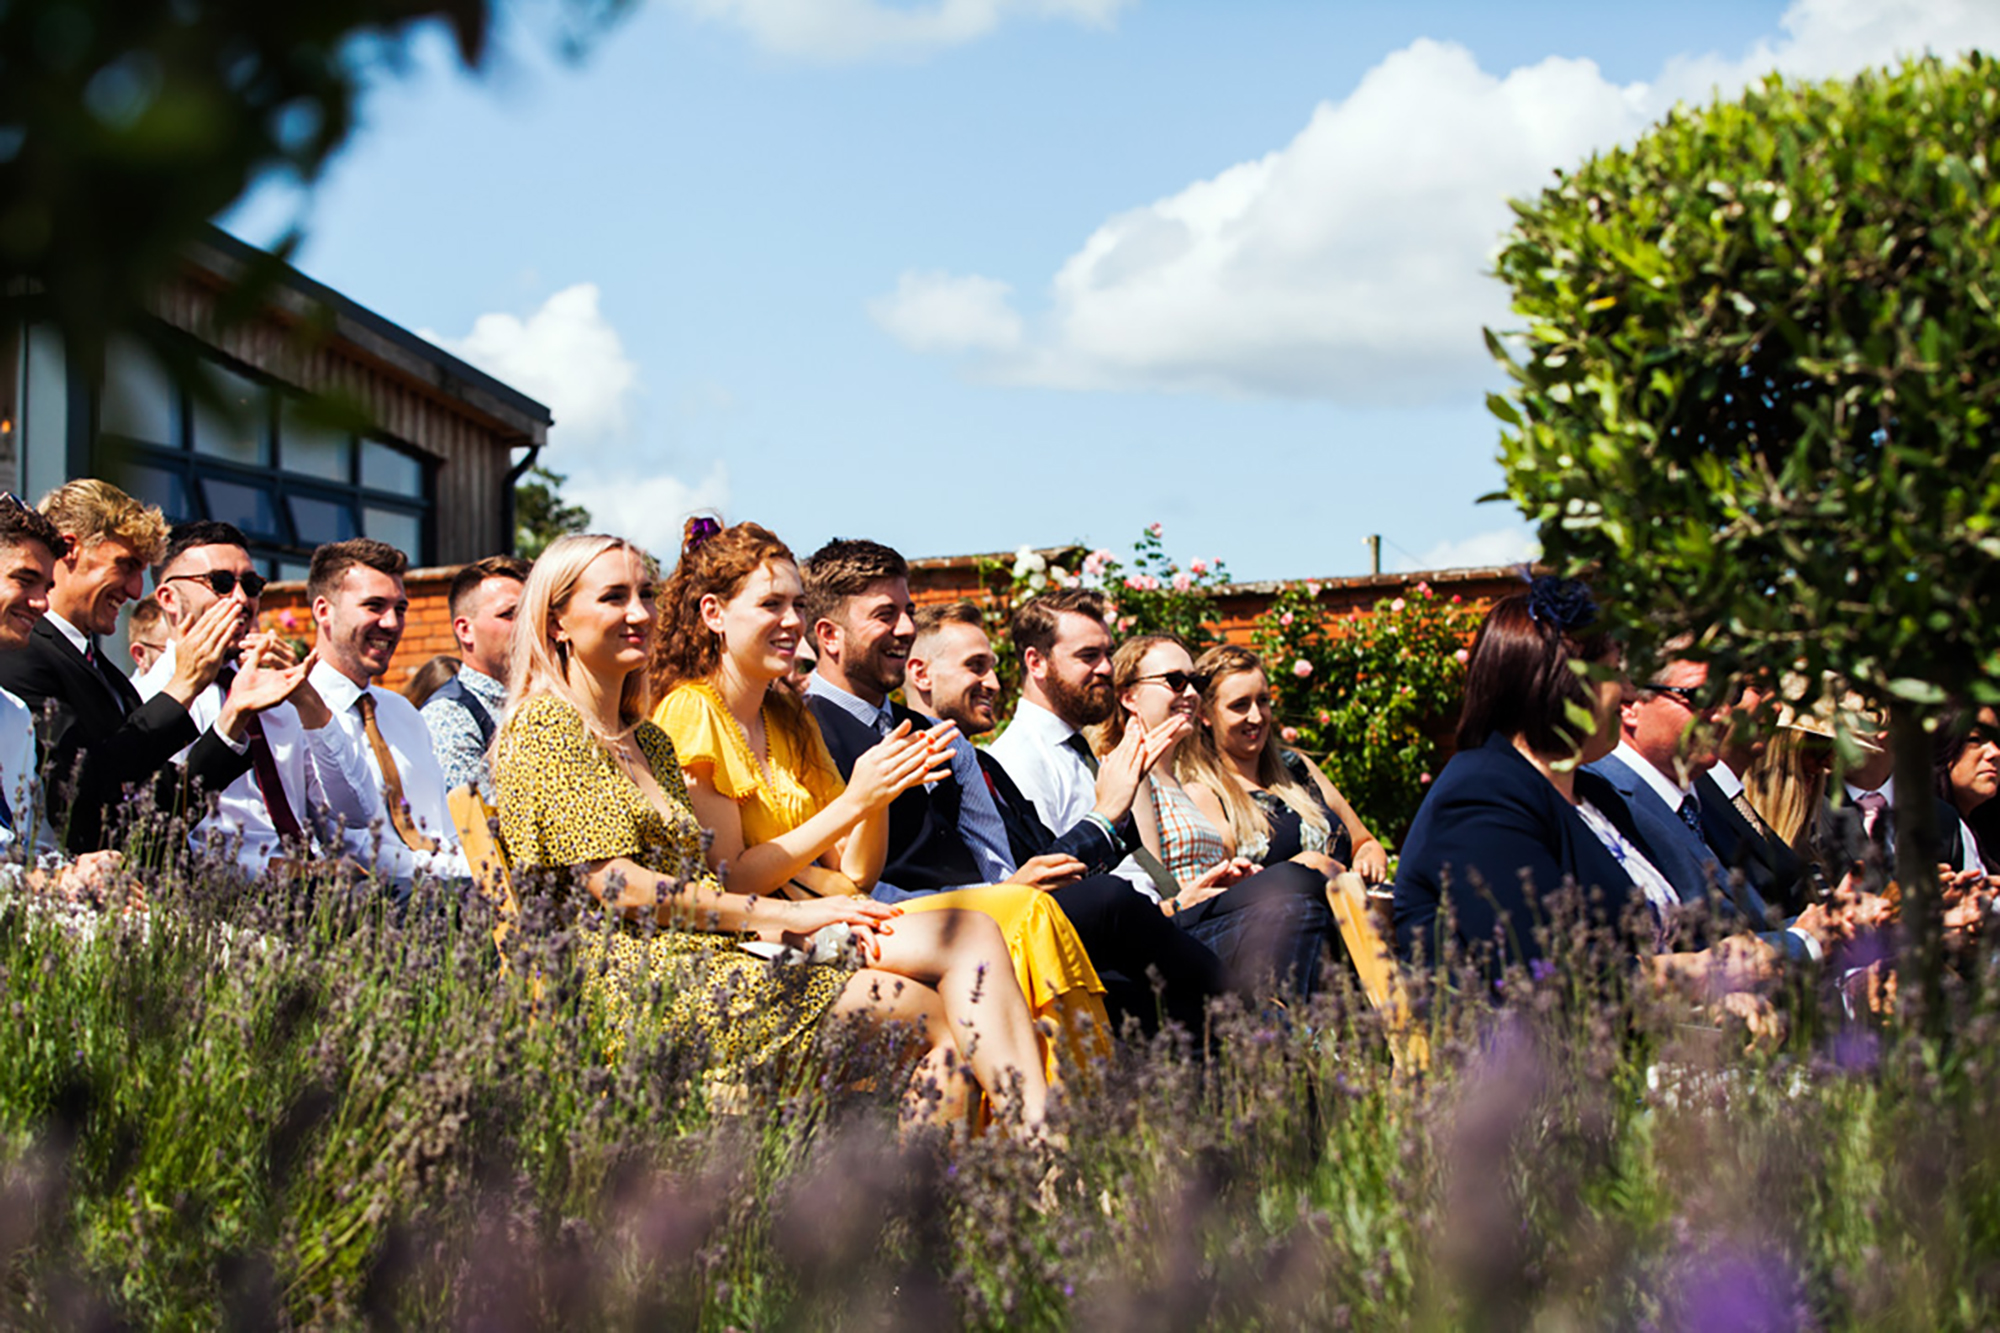 Seated guests in the Walled Garden clap to congratulate the bride and groom